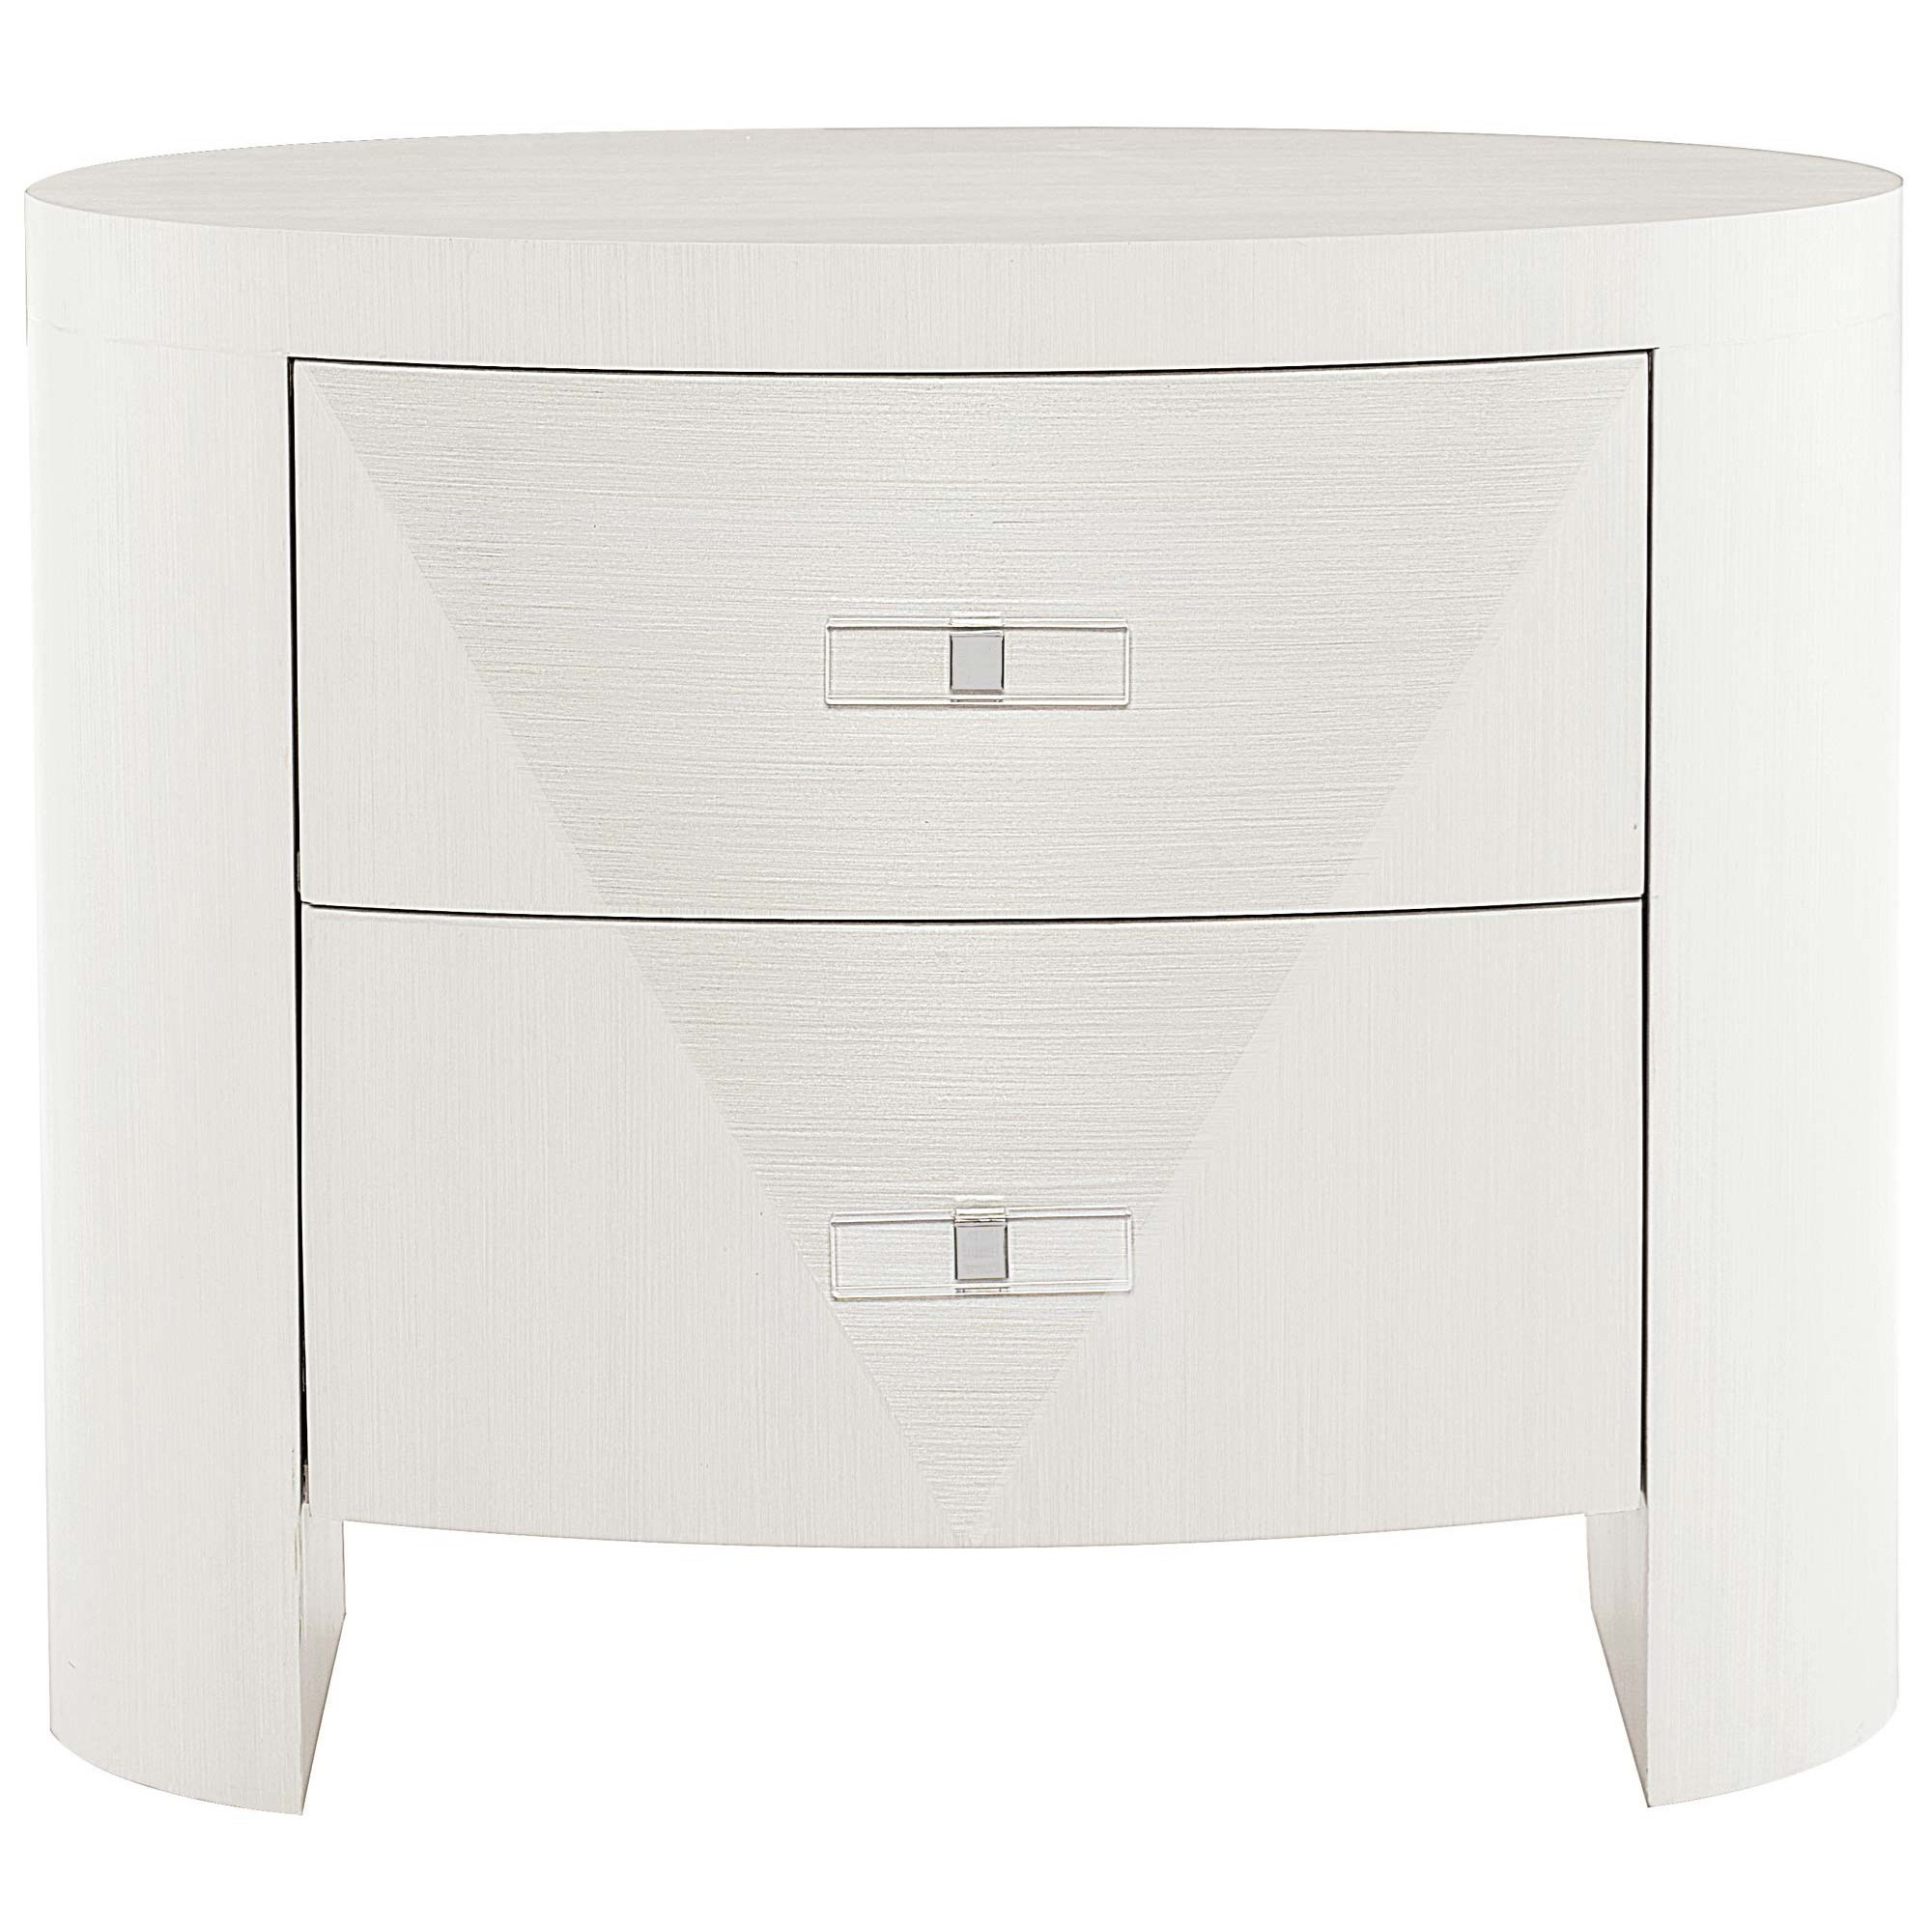 Axiom Oval Nightstand by Bernhardt at Baer's Furniture